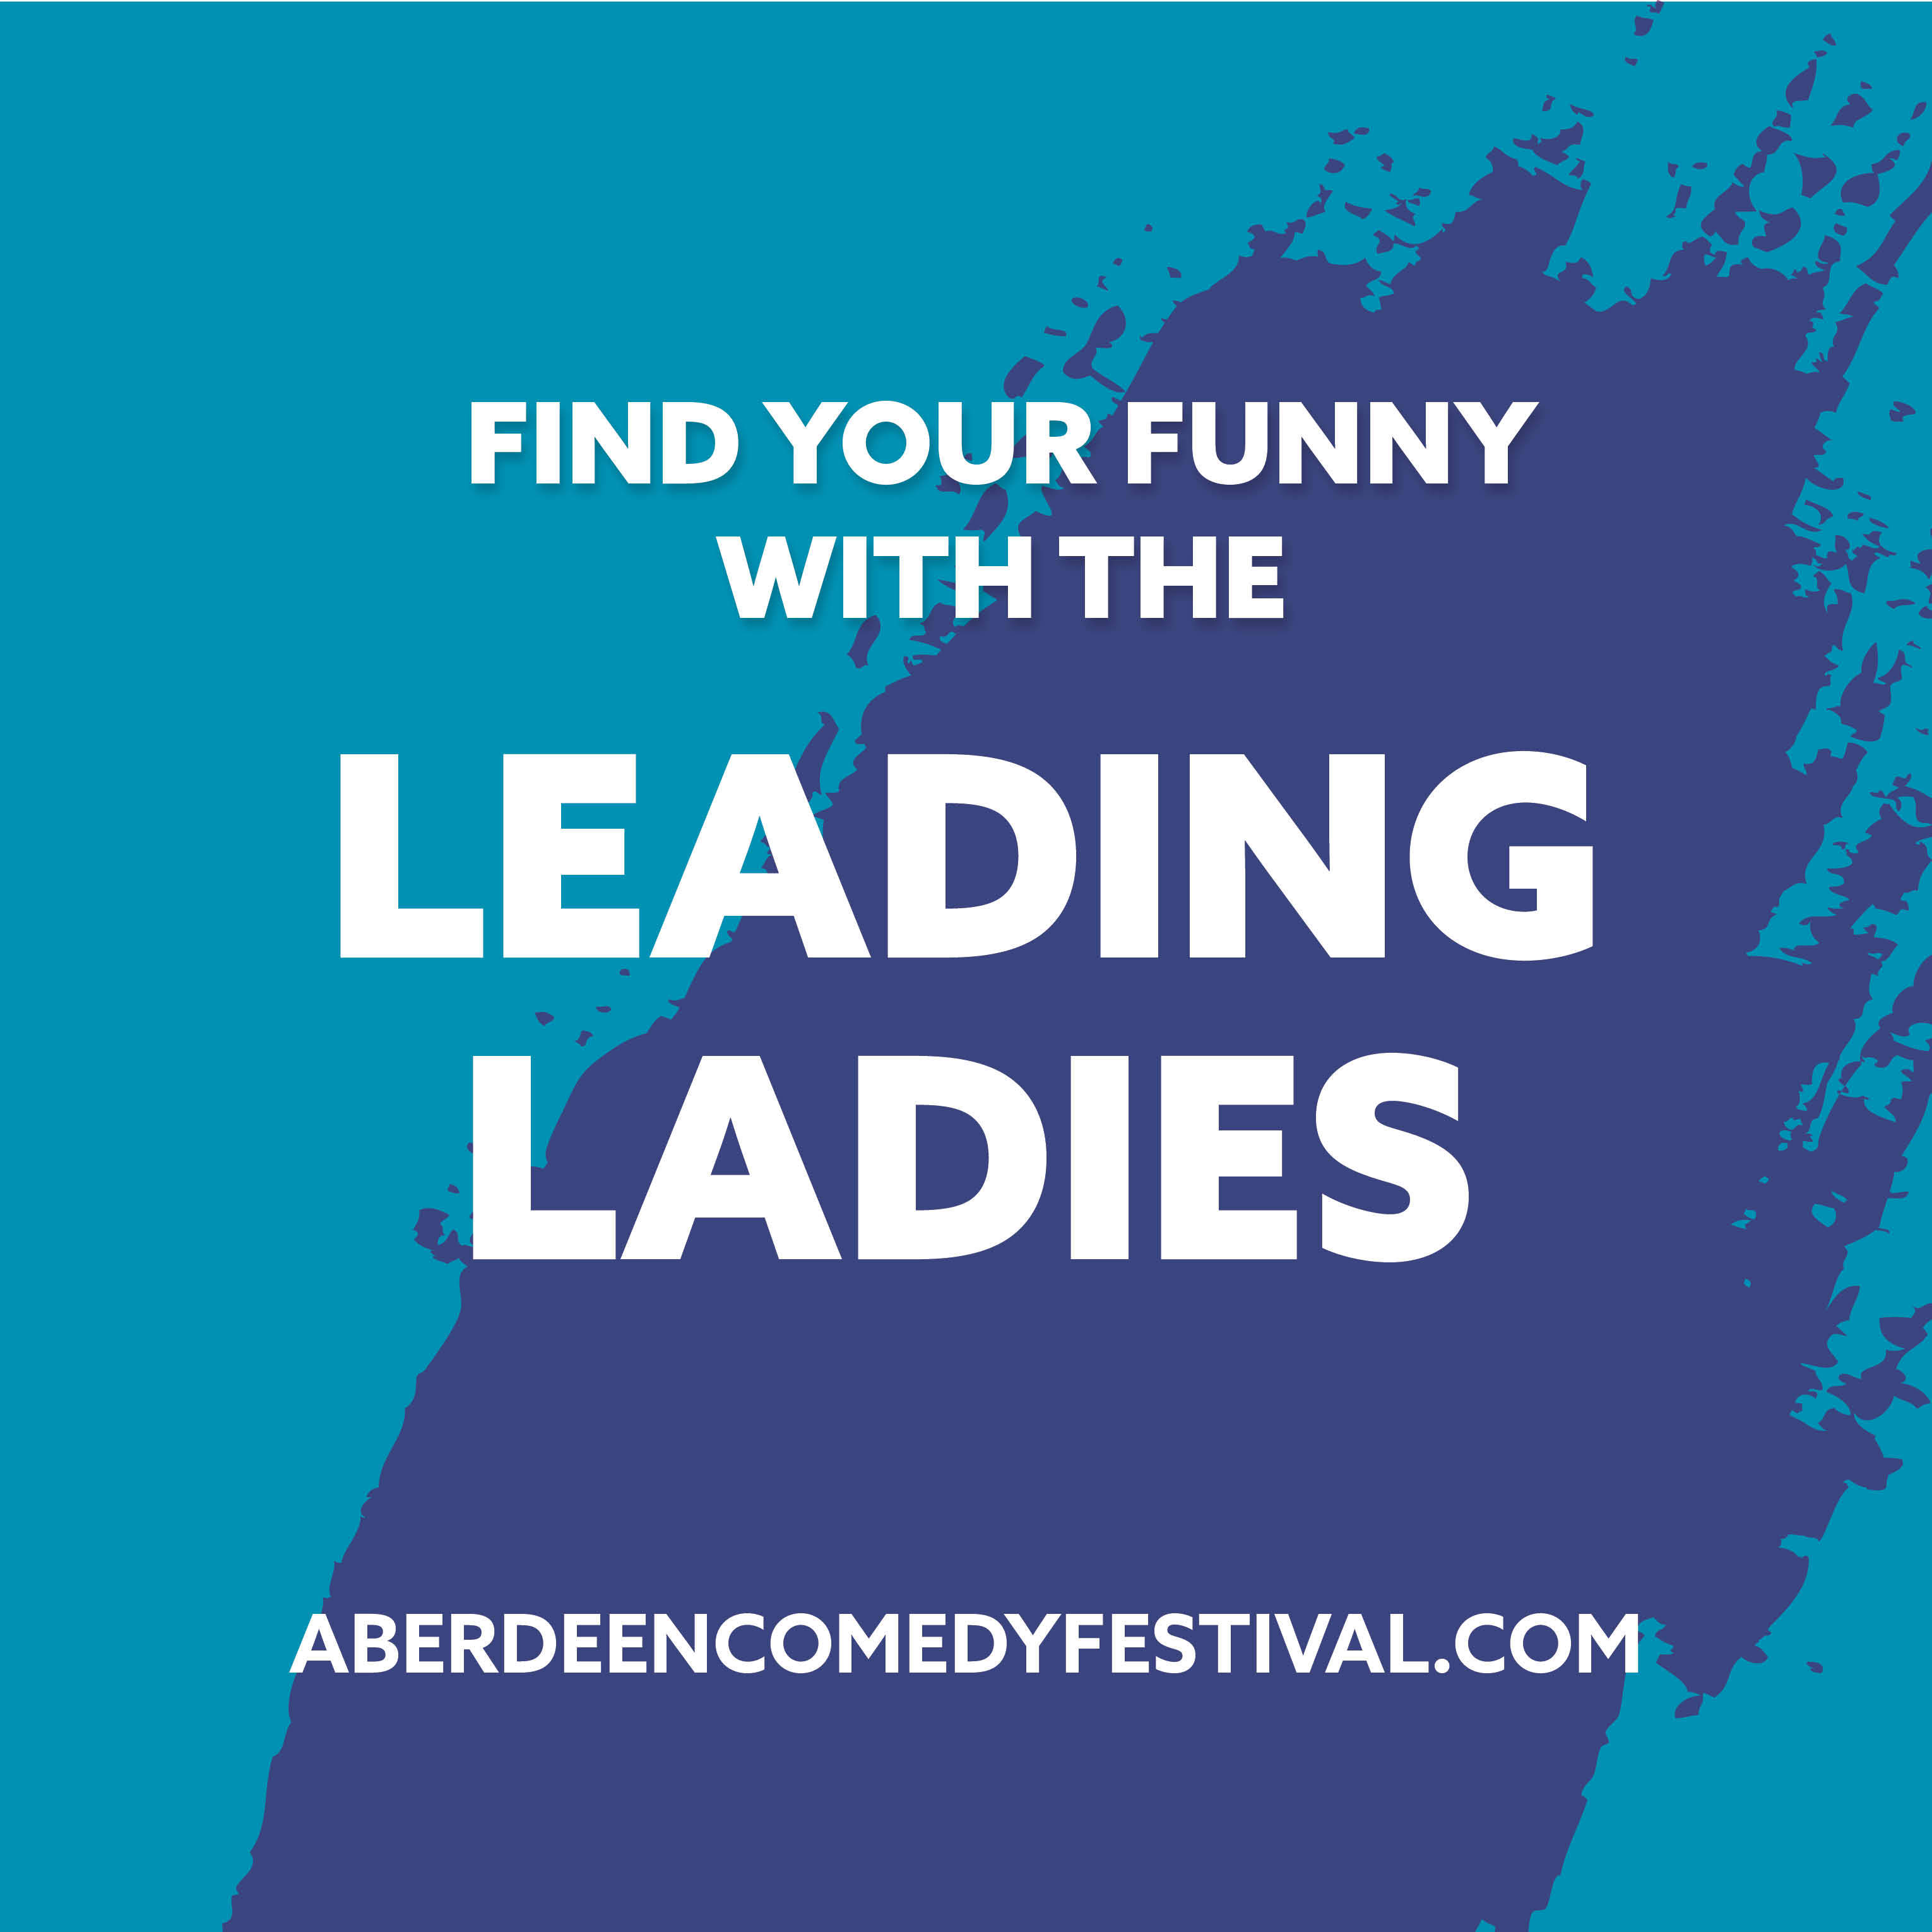 Find your funny with the leading ladies of comedy